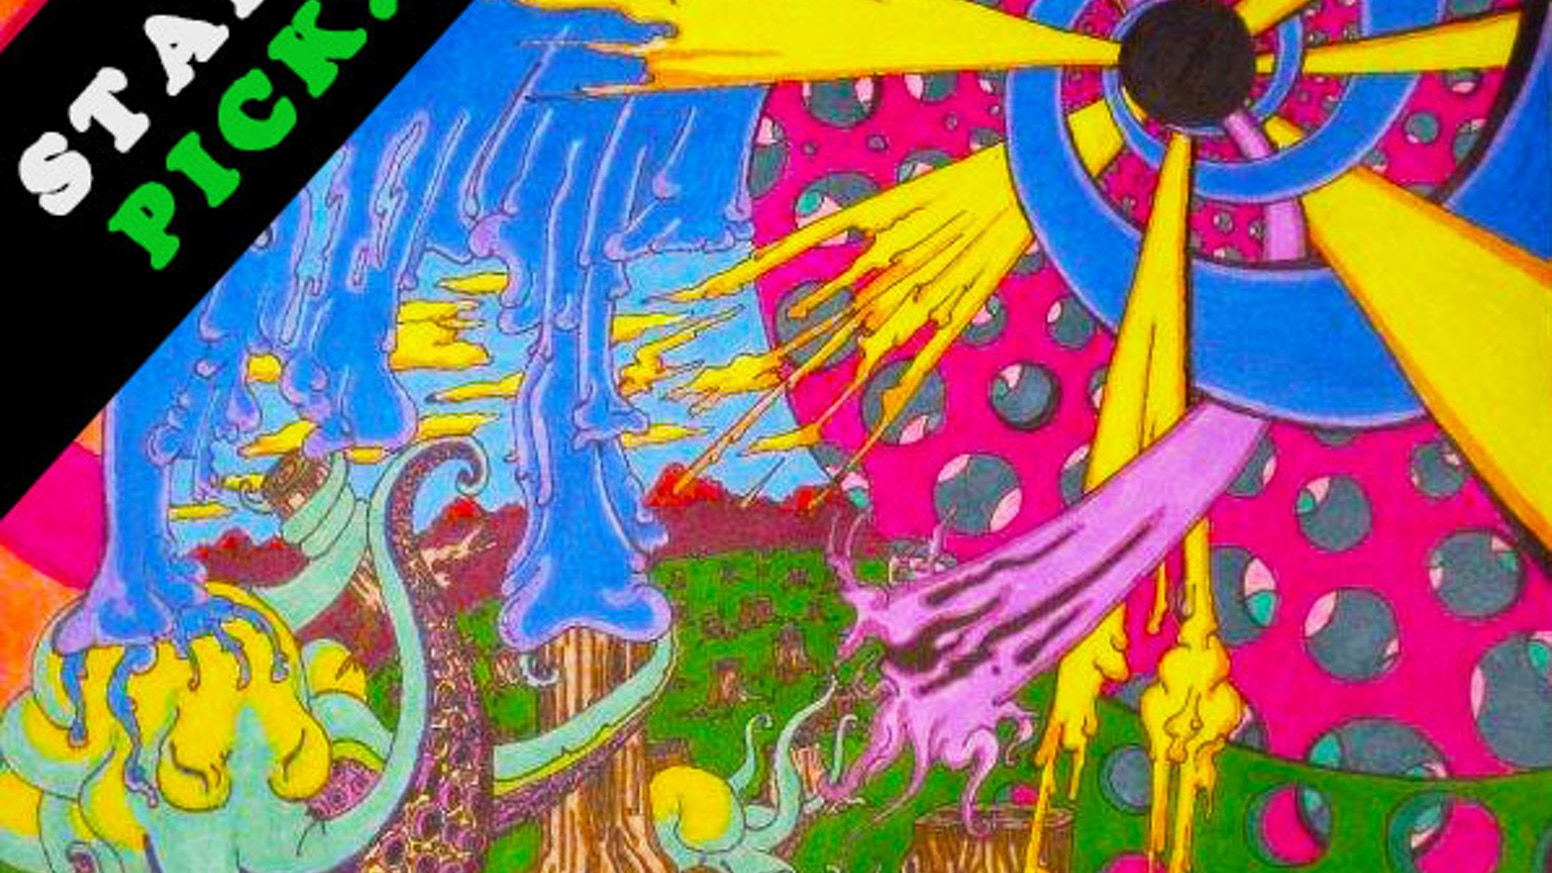 the psychedelic coloring book - Psychedelic Coloring Book